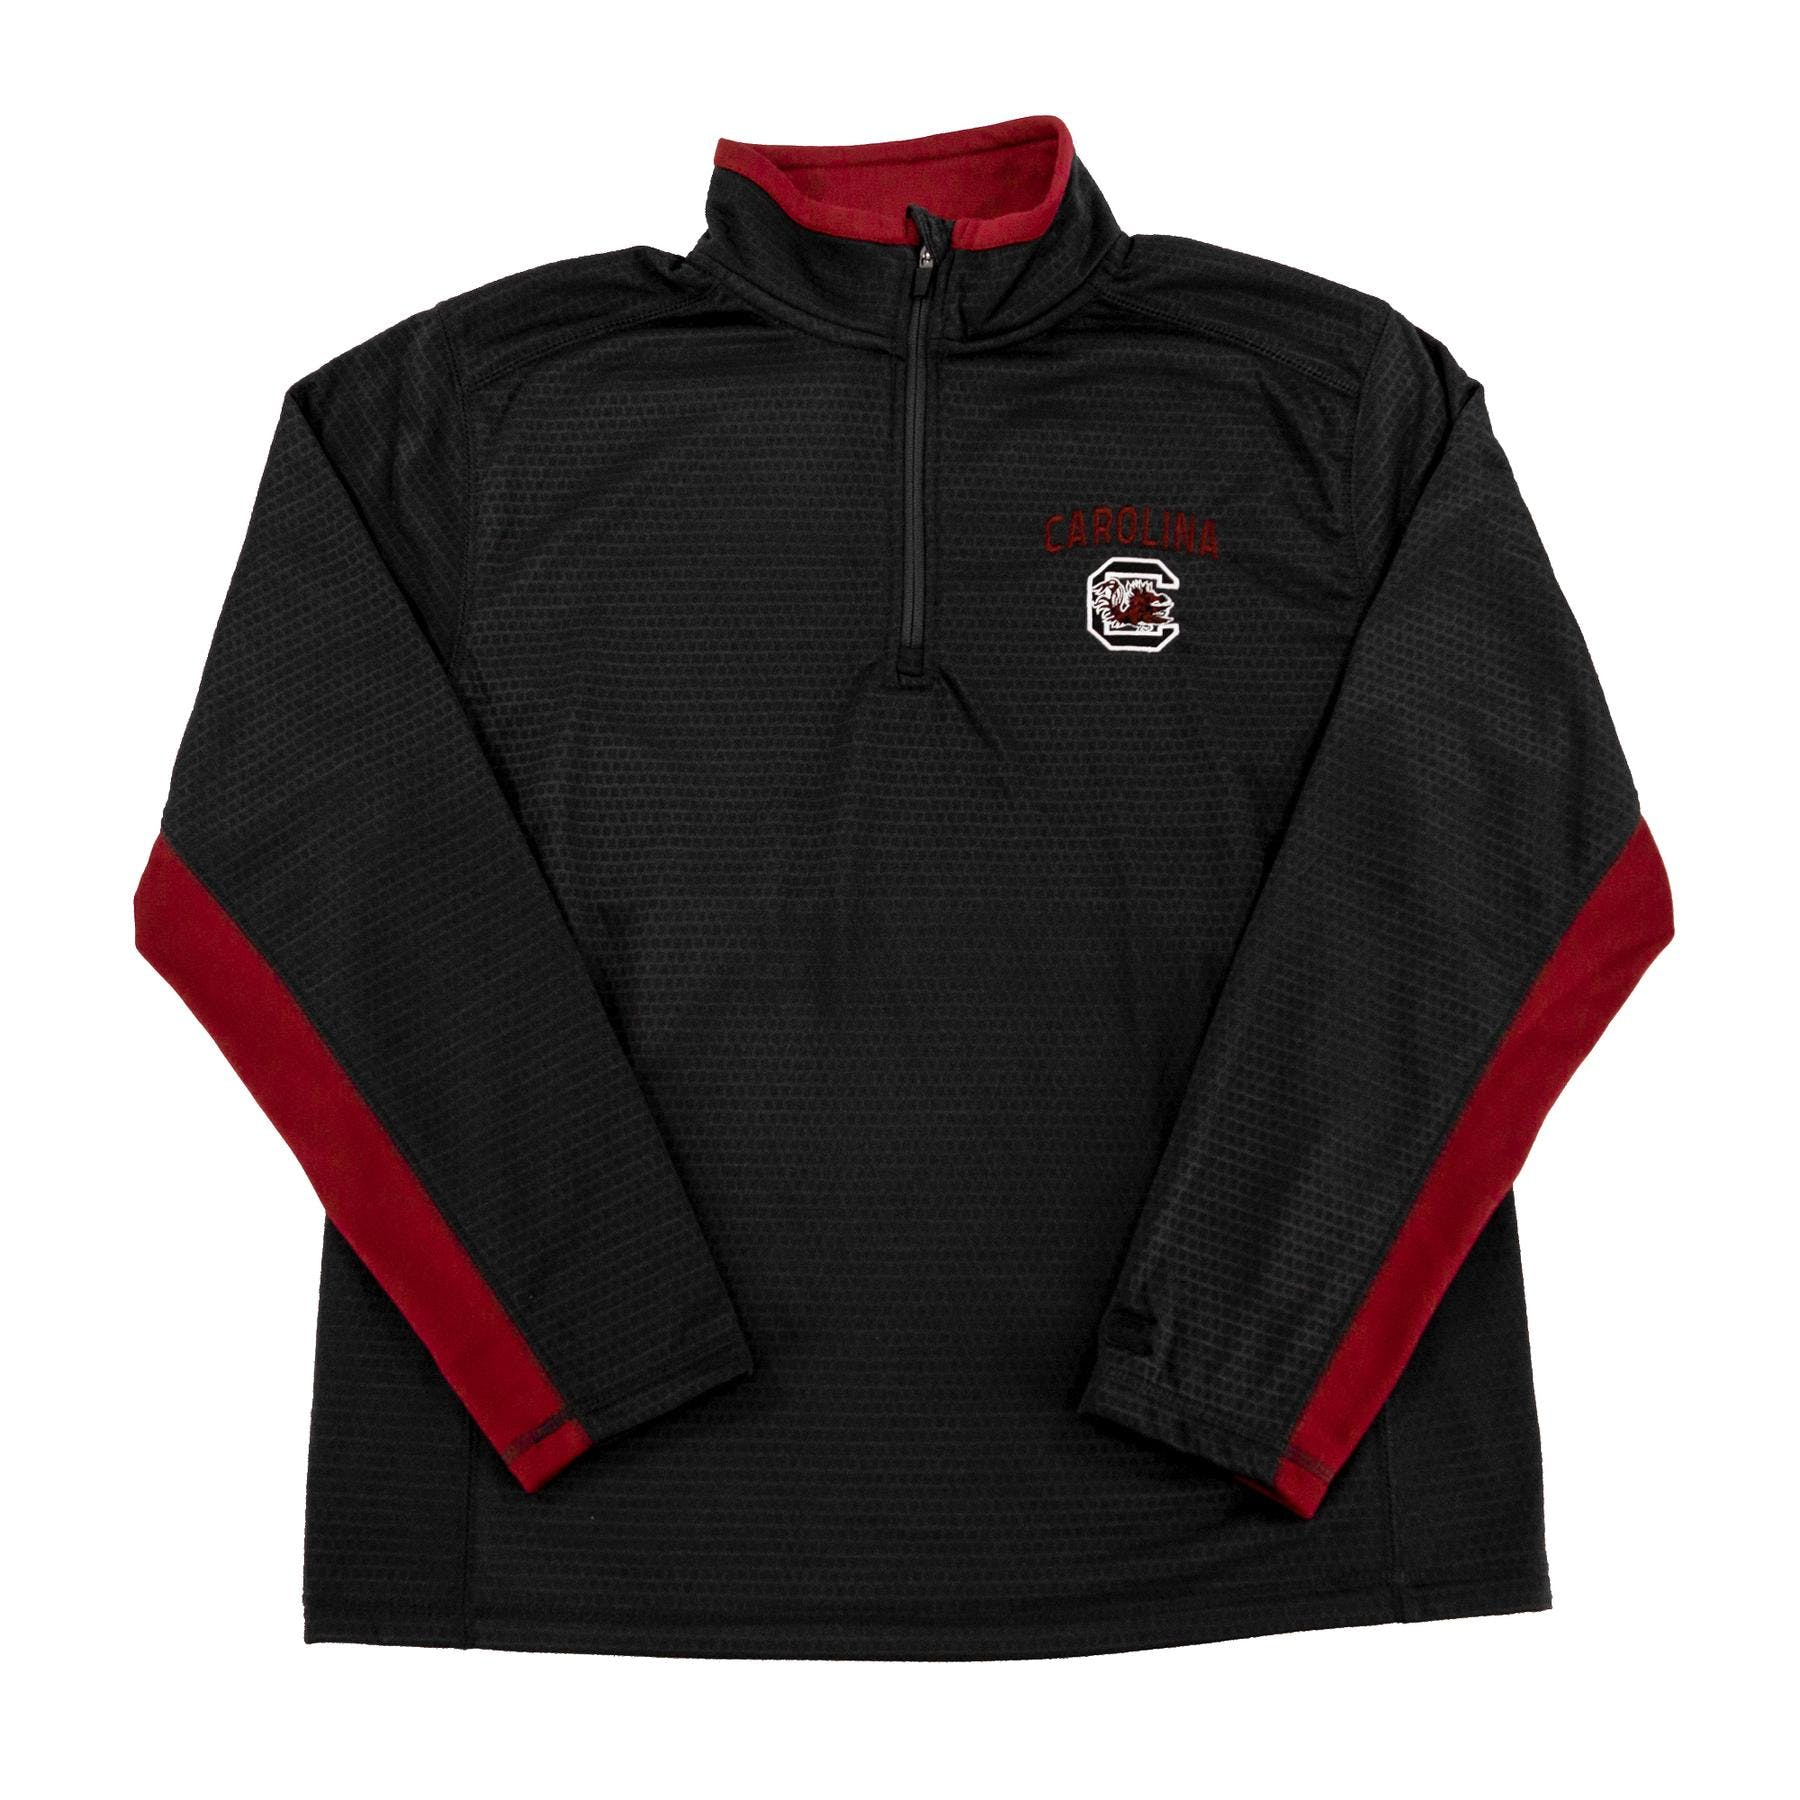 South Carolina Gamecocks Officially Licensed Apparel Liquidation